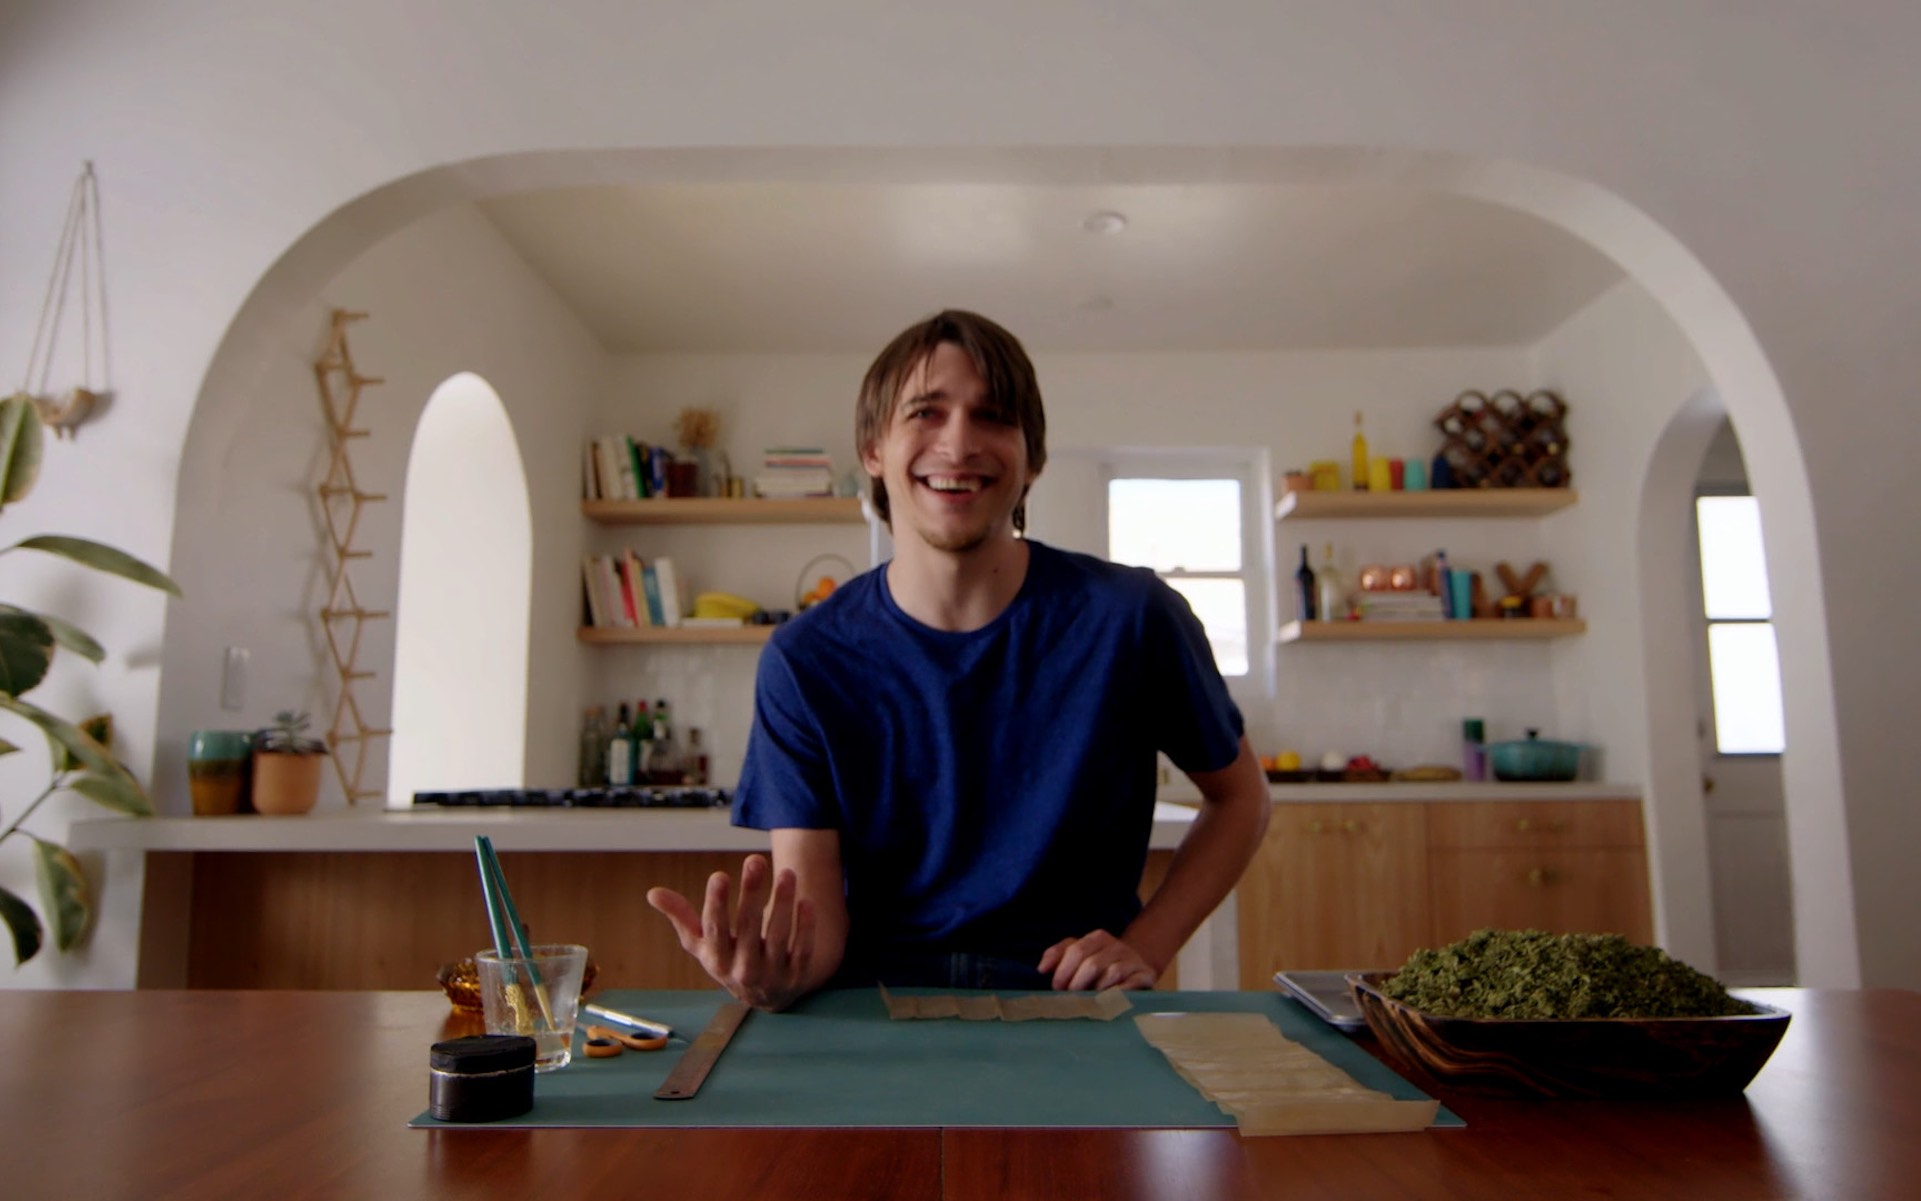 Joints become art with Let's Roll with Tony Greenhand. (Courtesy Let's Roll with Tony Greenhand)